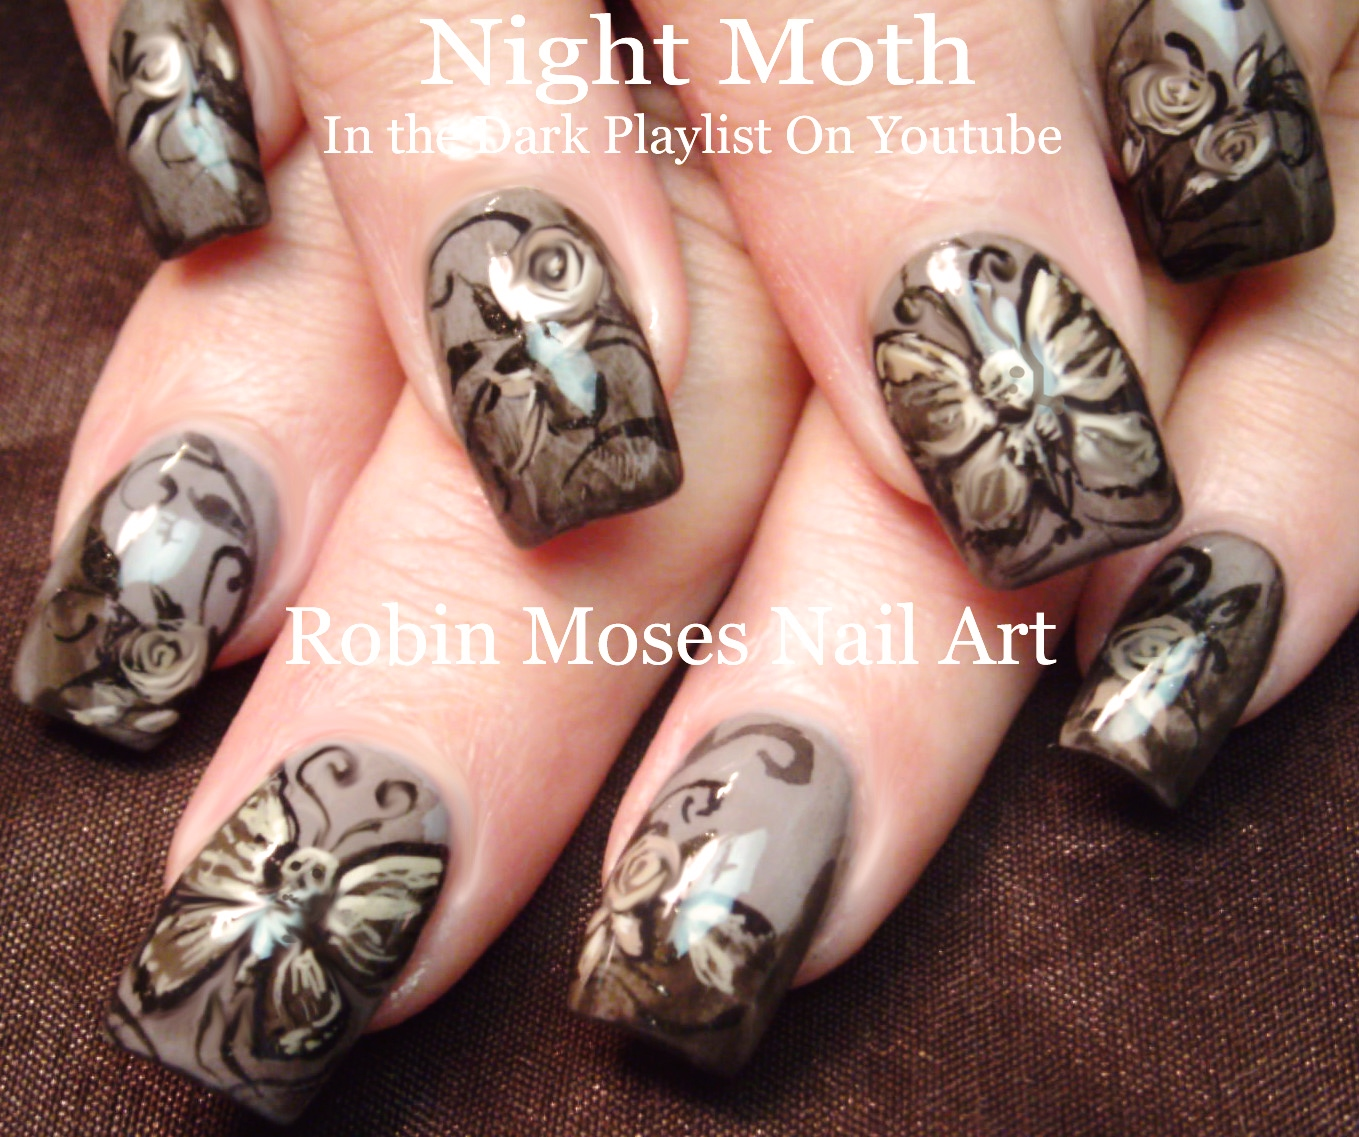 Robin moses nail art skulls and butterflies up today skull nail art skeleton butterfly nails spooky skull roses nail design tutorial prinsesfo Gallery